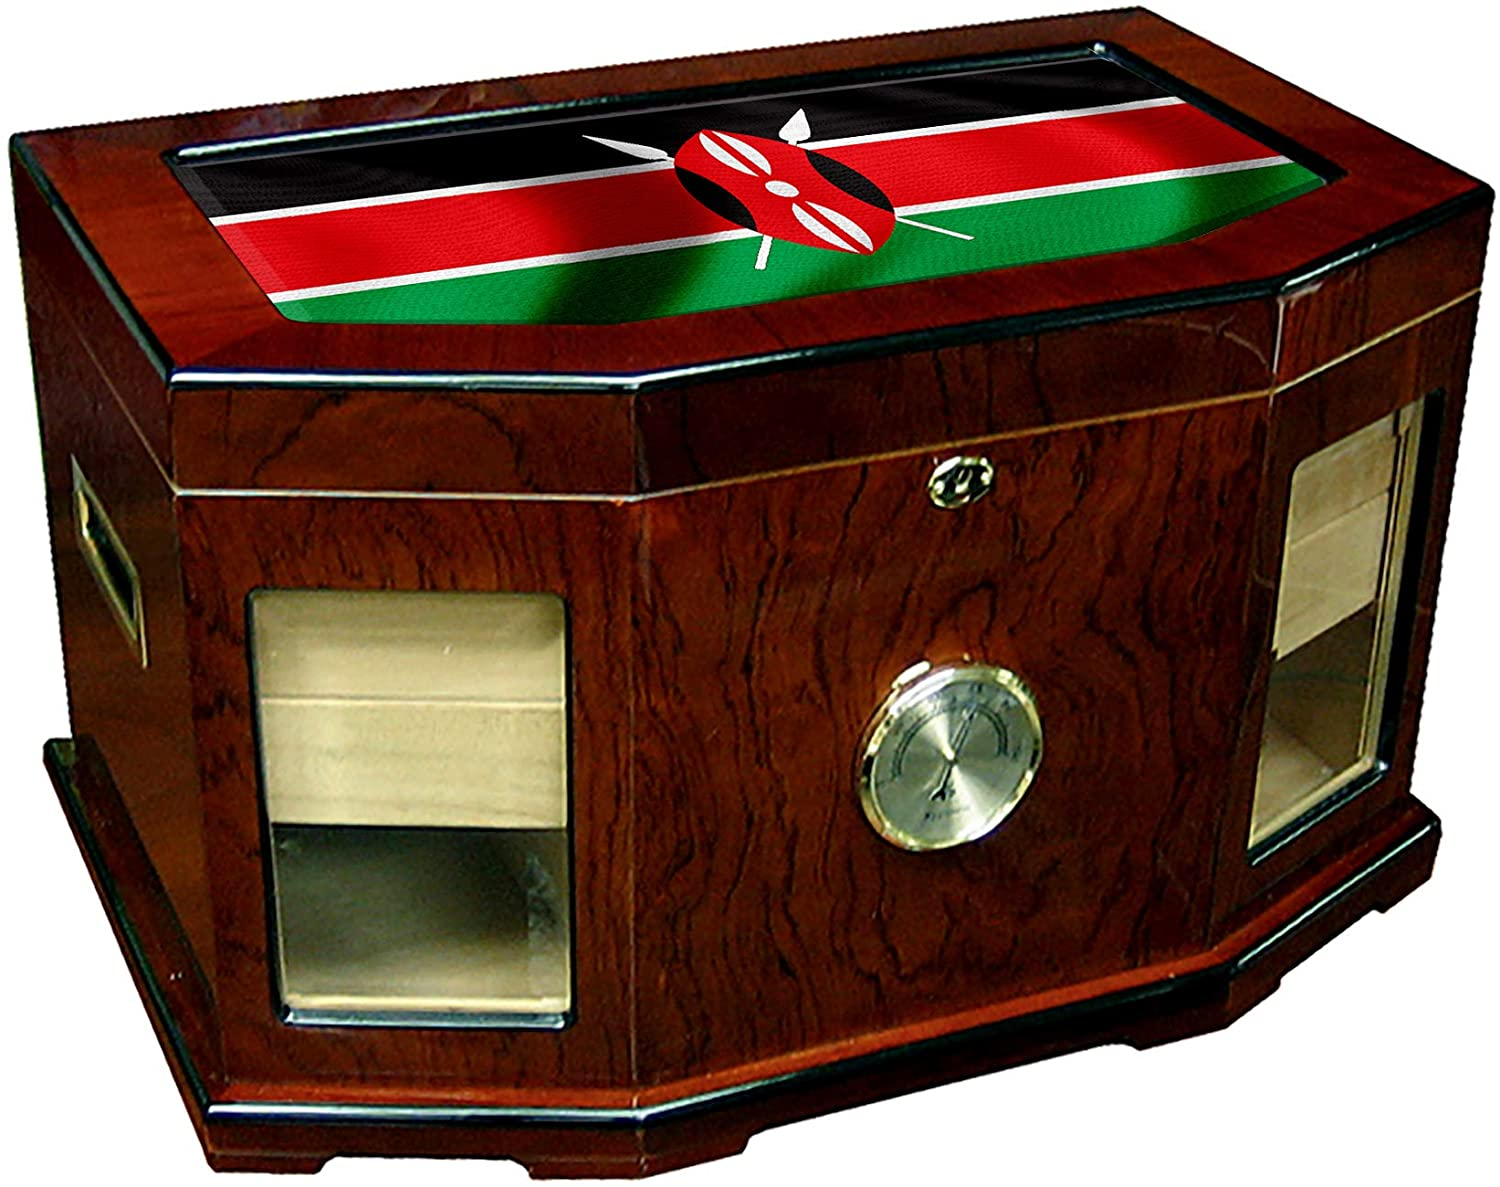 Large Premium Desktop Humidor - Glass Top - Flag of Kenya (Kenyan) - Waves Design - 300 Cigar Capacity - Cedar Lined with Two humidifiers & Large Front Mounted Hygrometer.